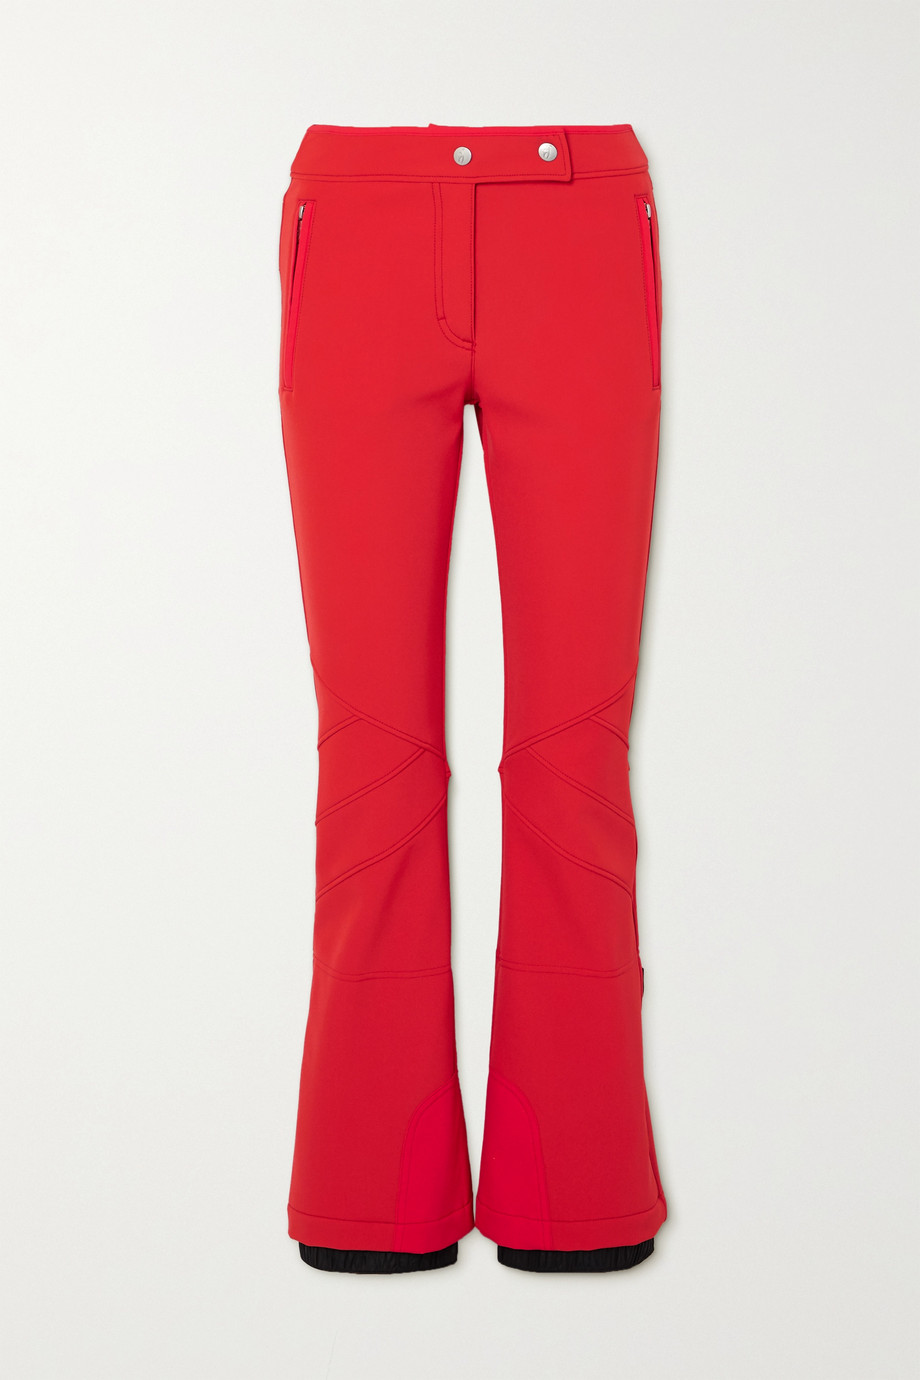 toni sailer Sestriere flared ski pants